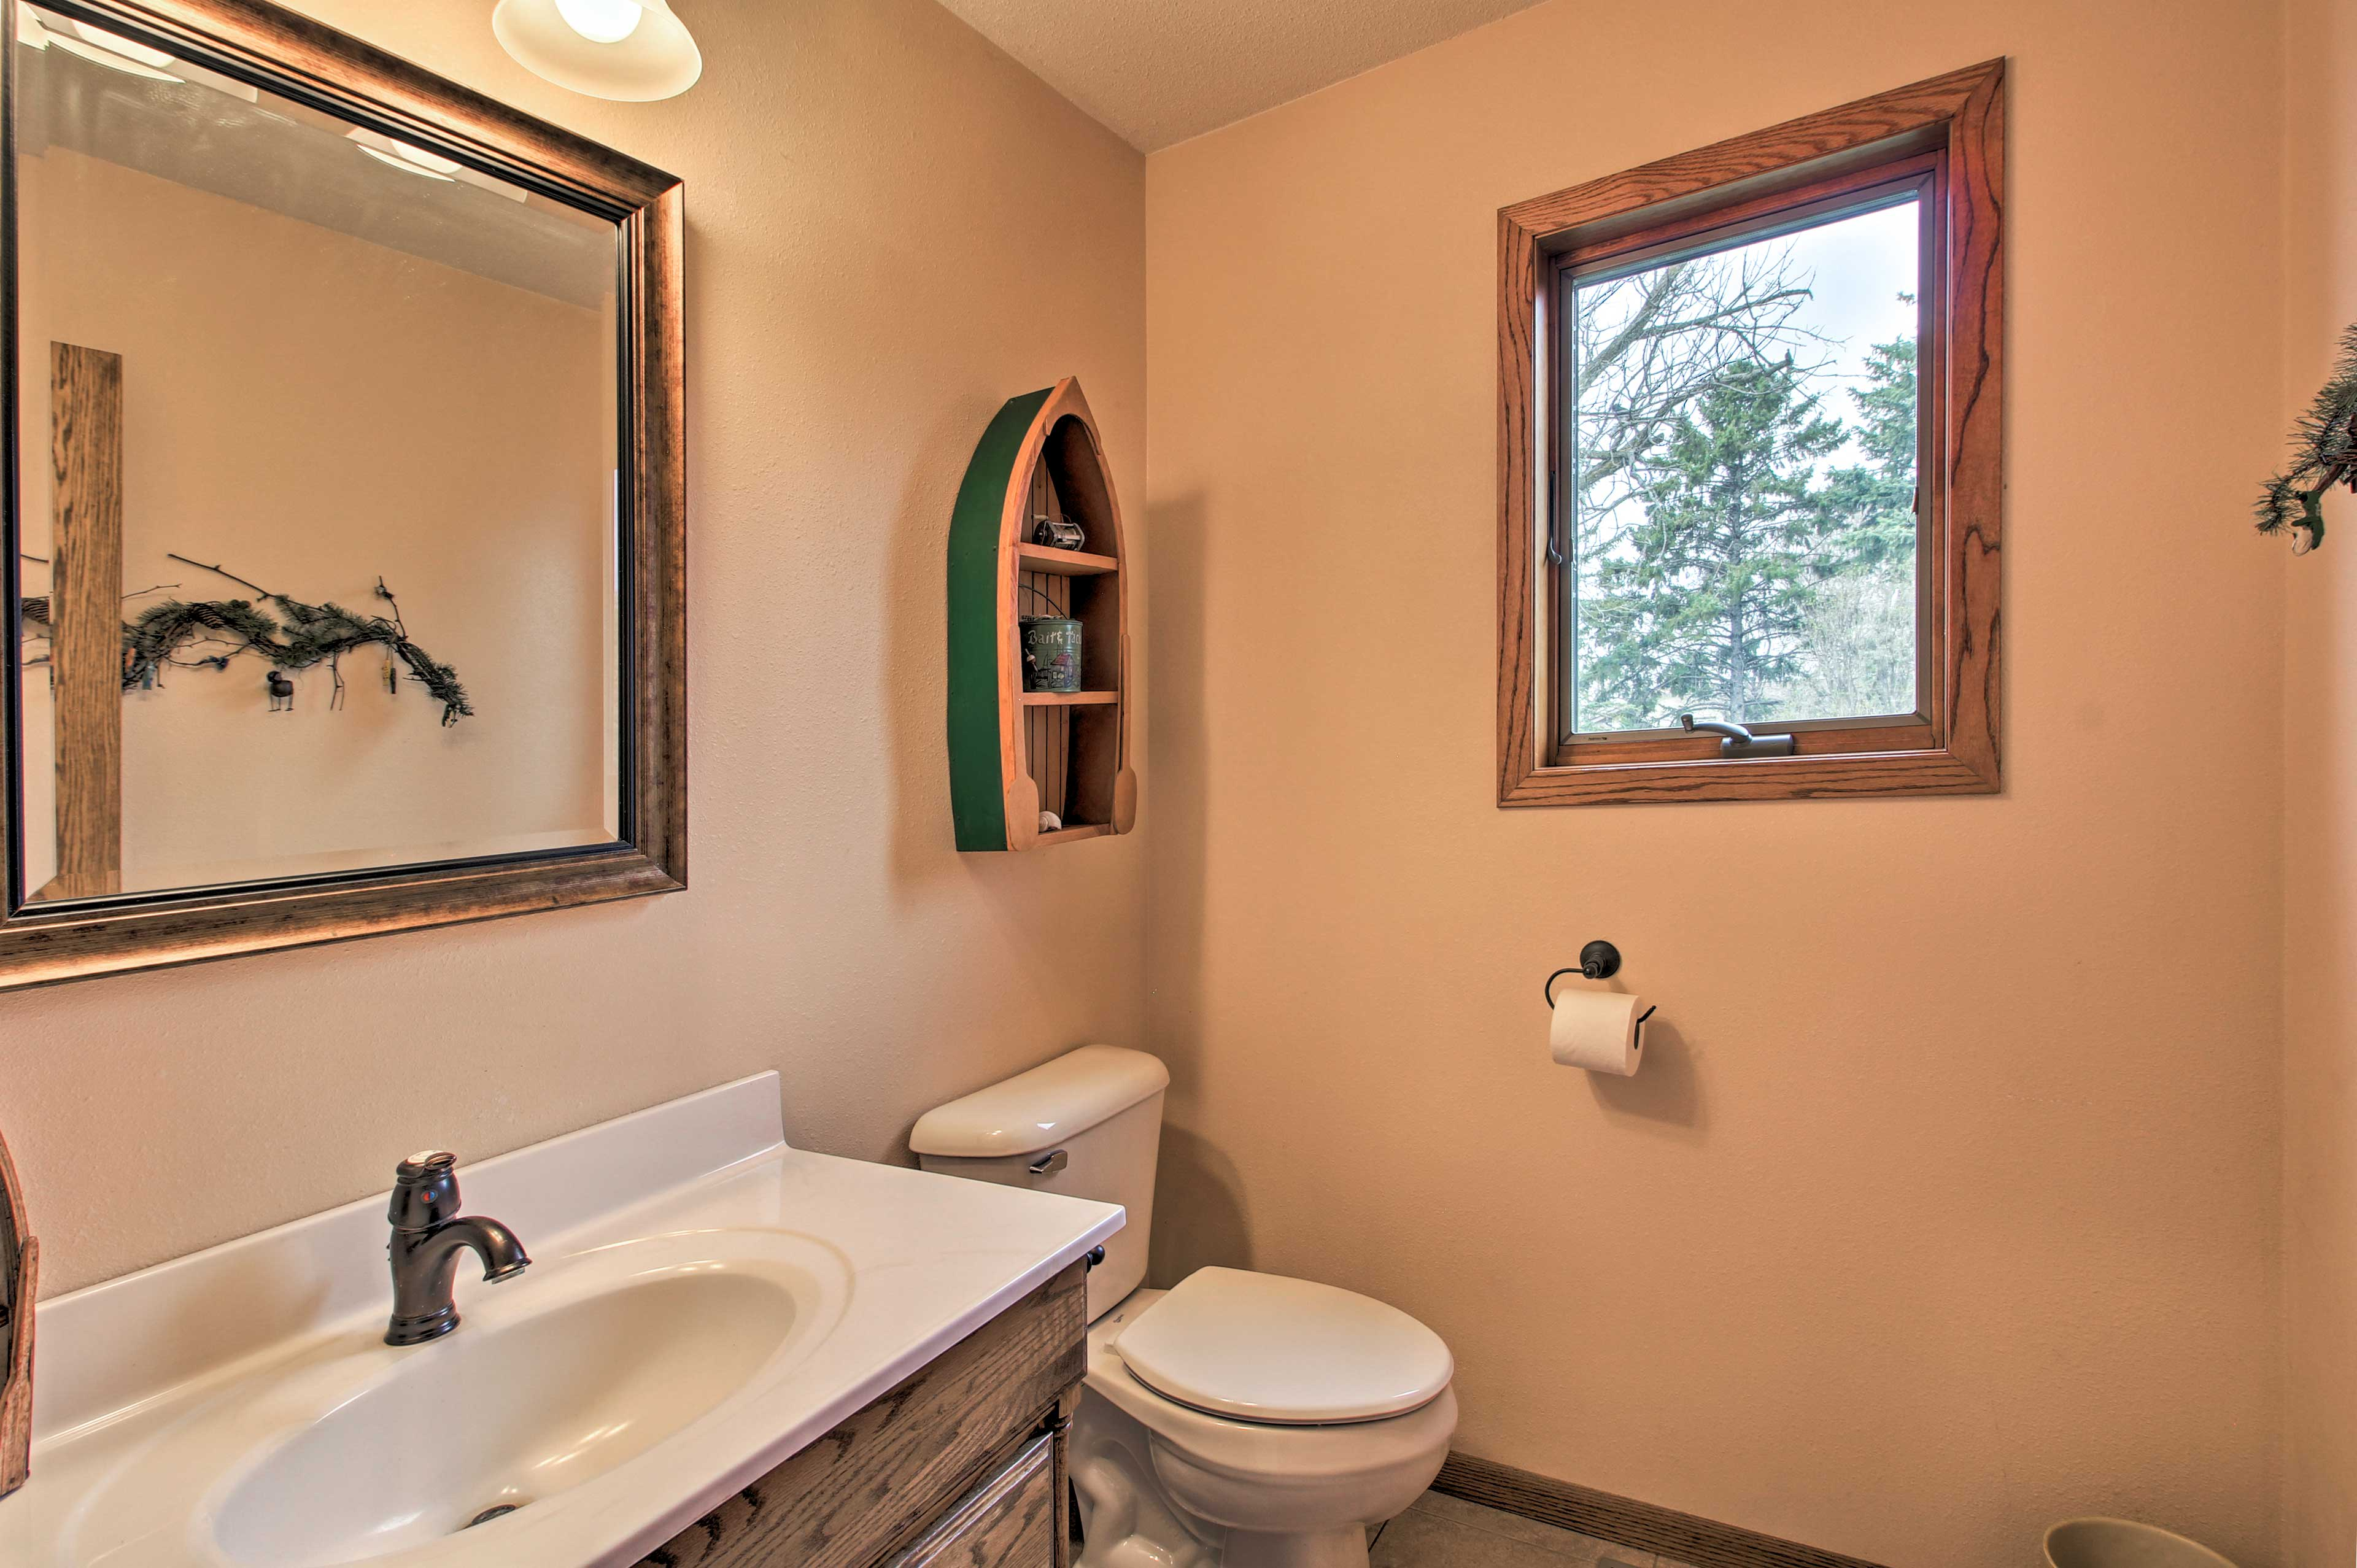 The house features 2.5 bathrooms.